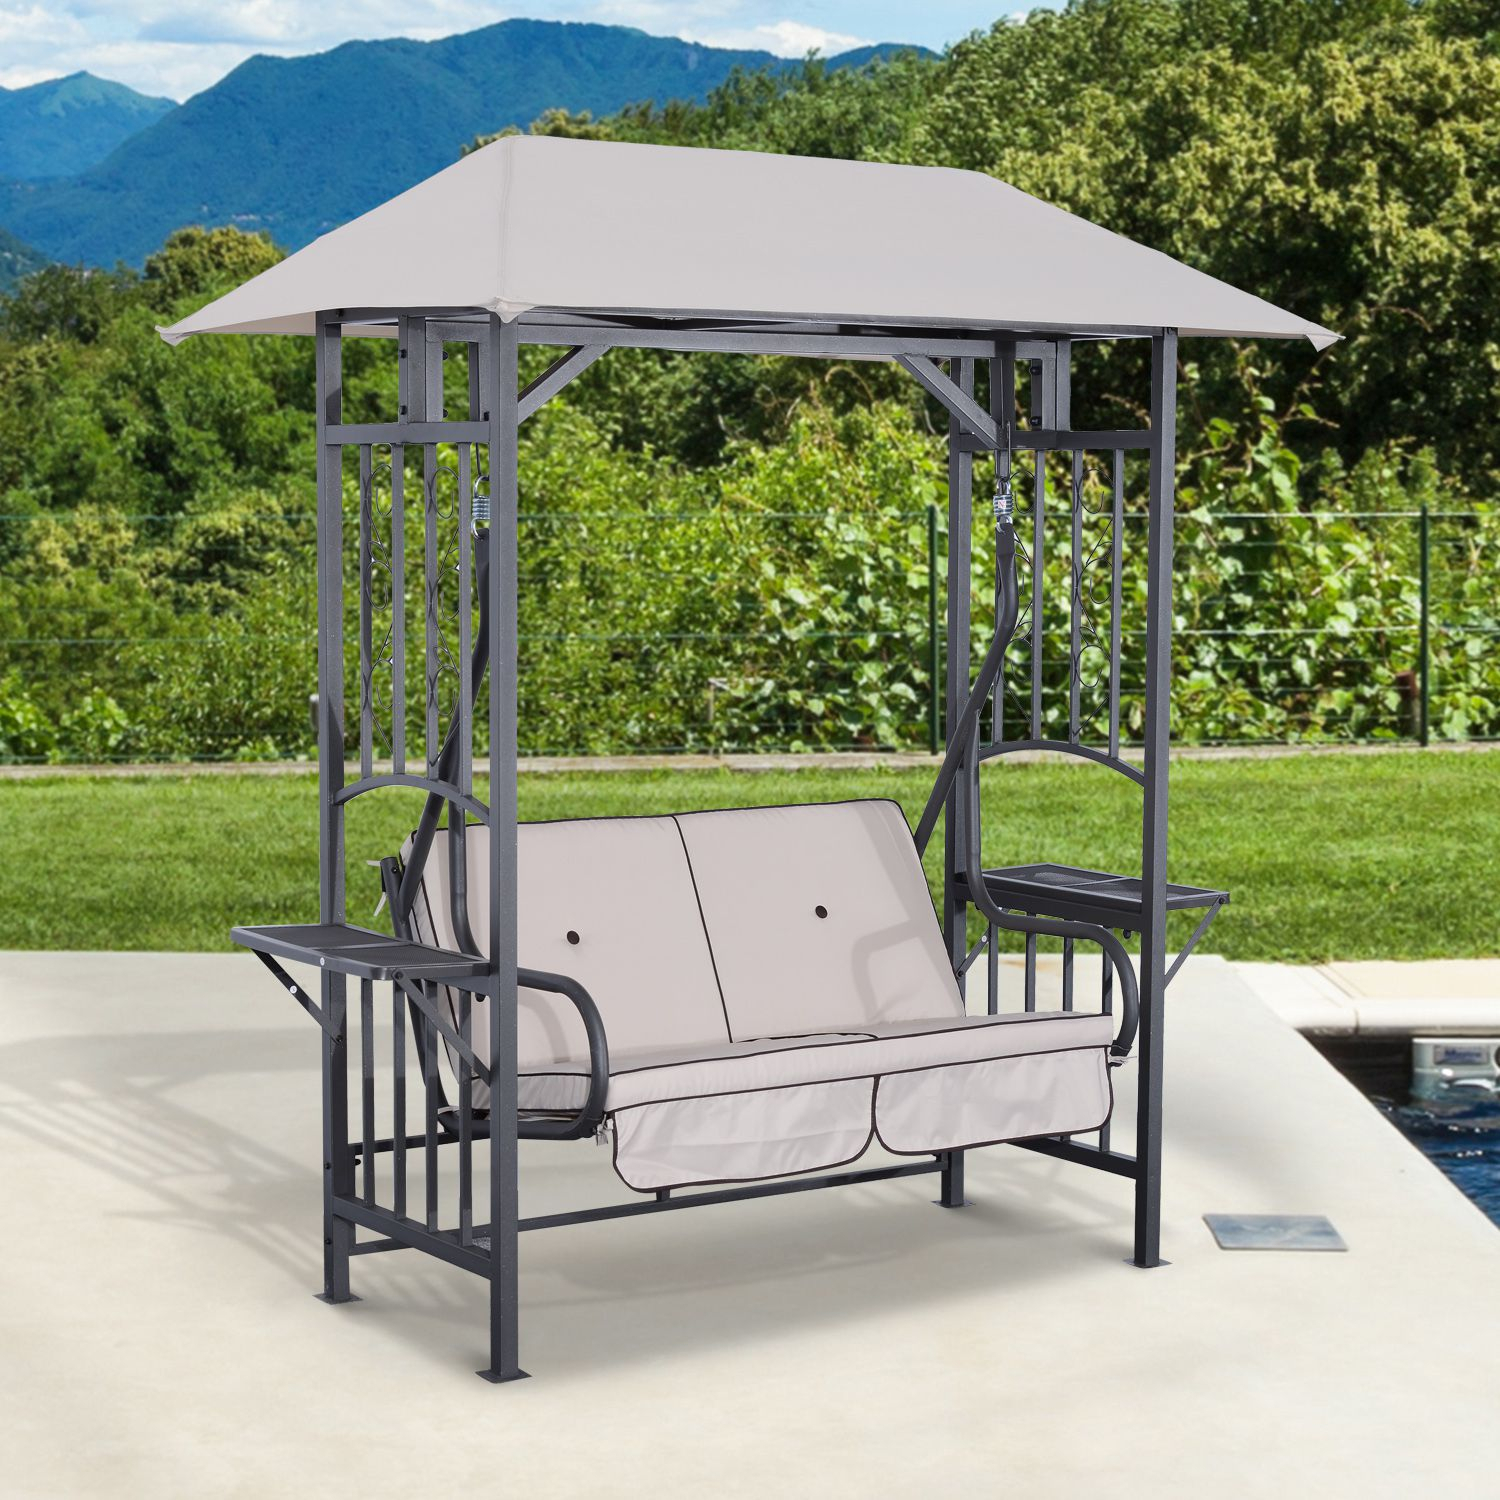 Outsunny 2 Person Patio Swing Chair Porch Outdoor Hammock Loveseat W/canopy Pertaining To 2 Person Adjustable Tilt Canopy Patio Loveseat Porch Swings (Image 19 of 25)